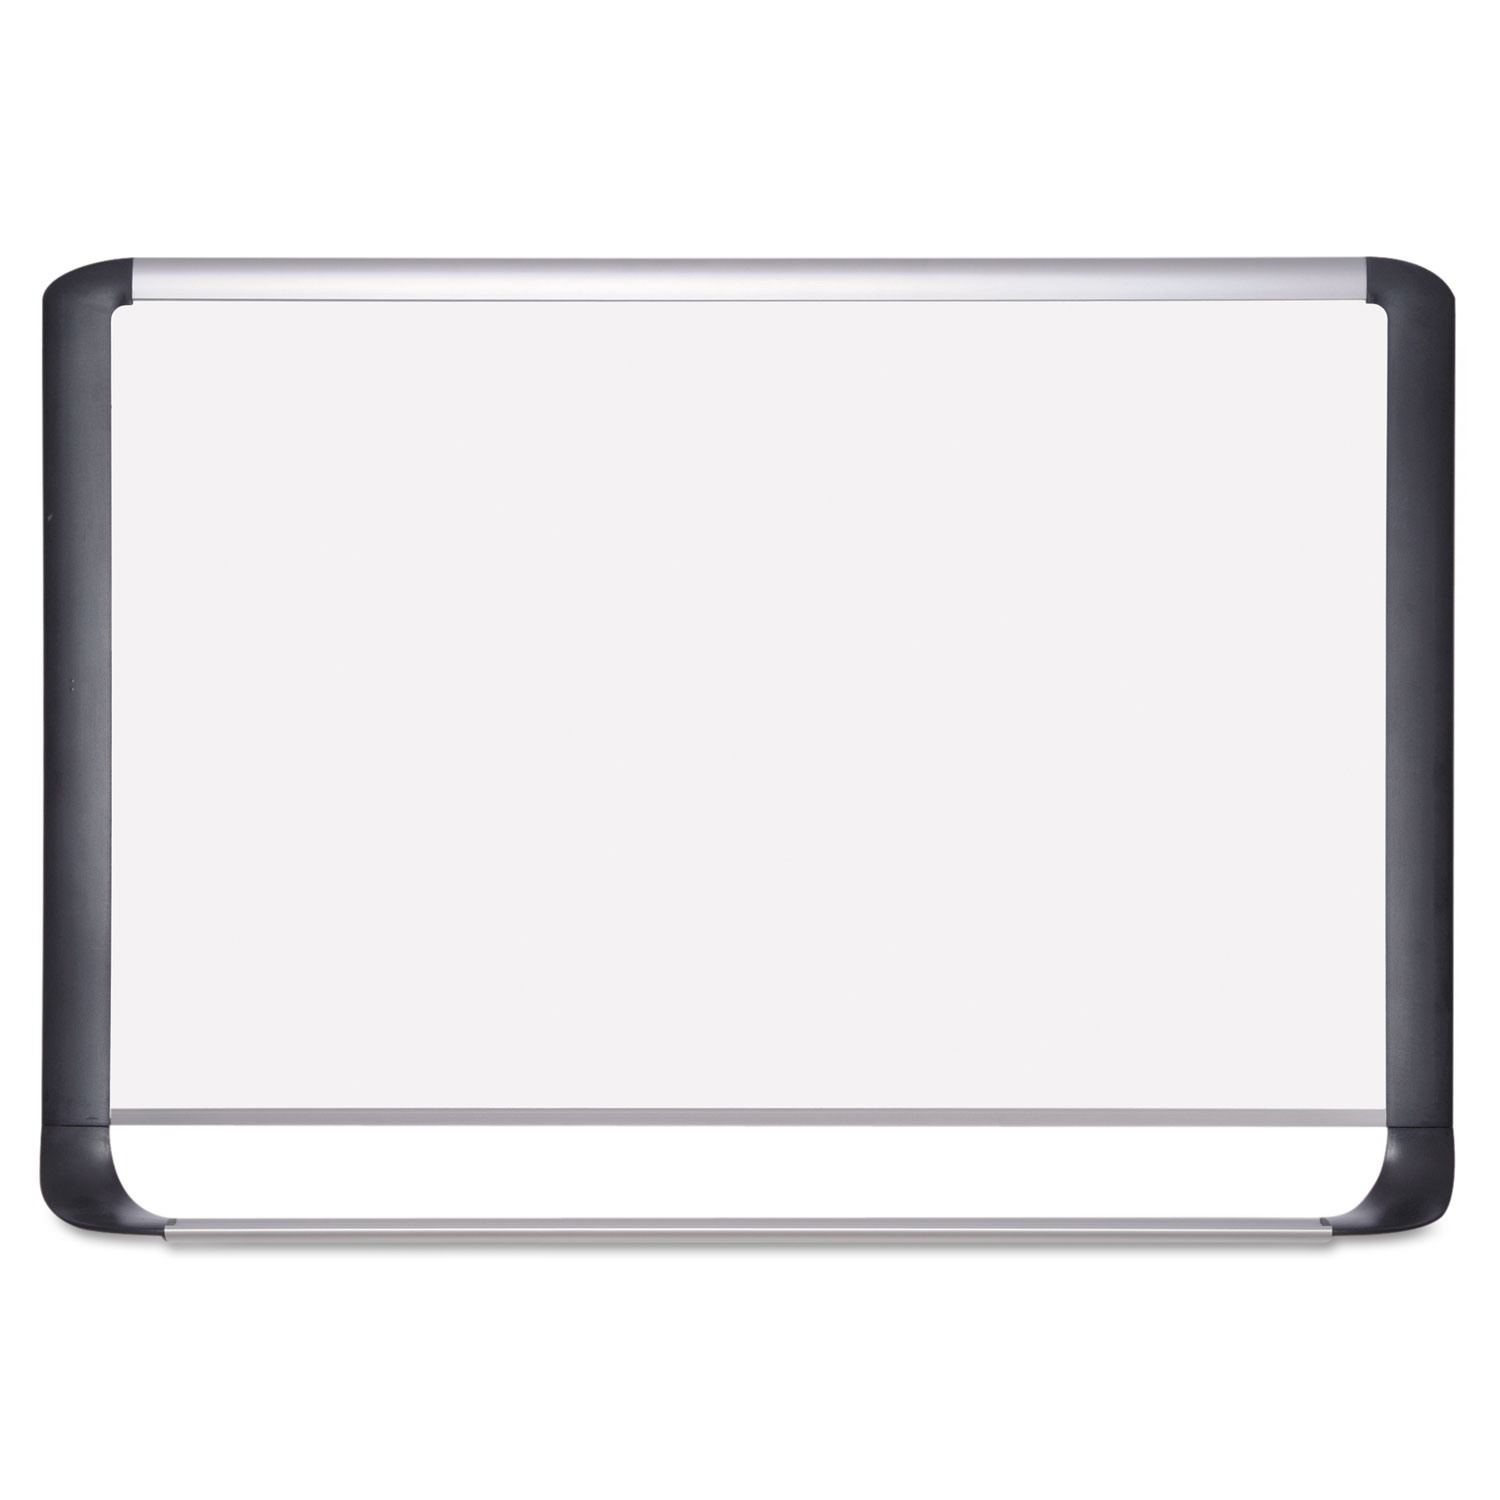 Lacquered steel magnetic dry erase board, 24 x 36, Silver/Black